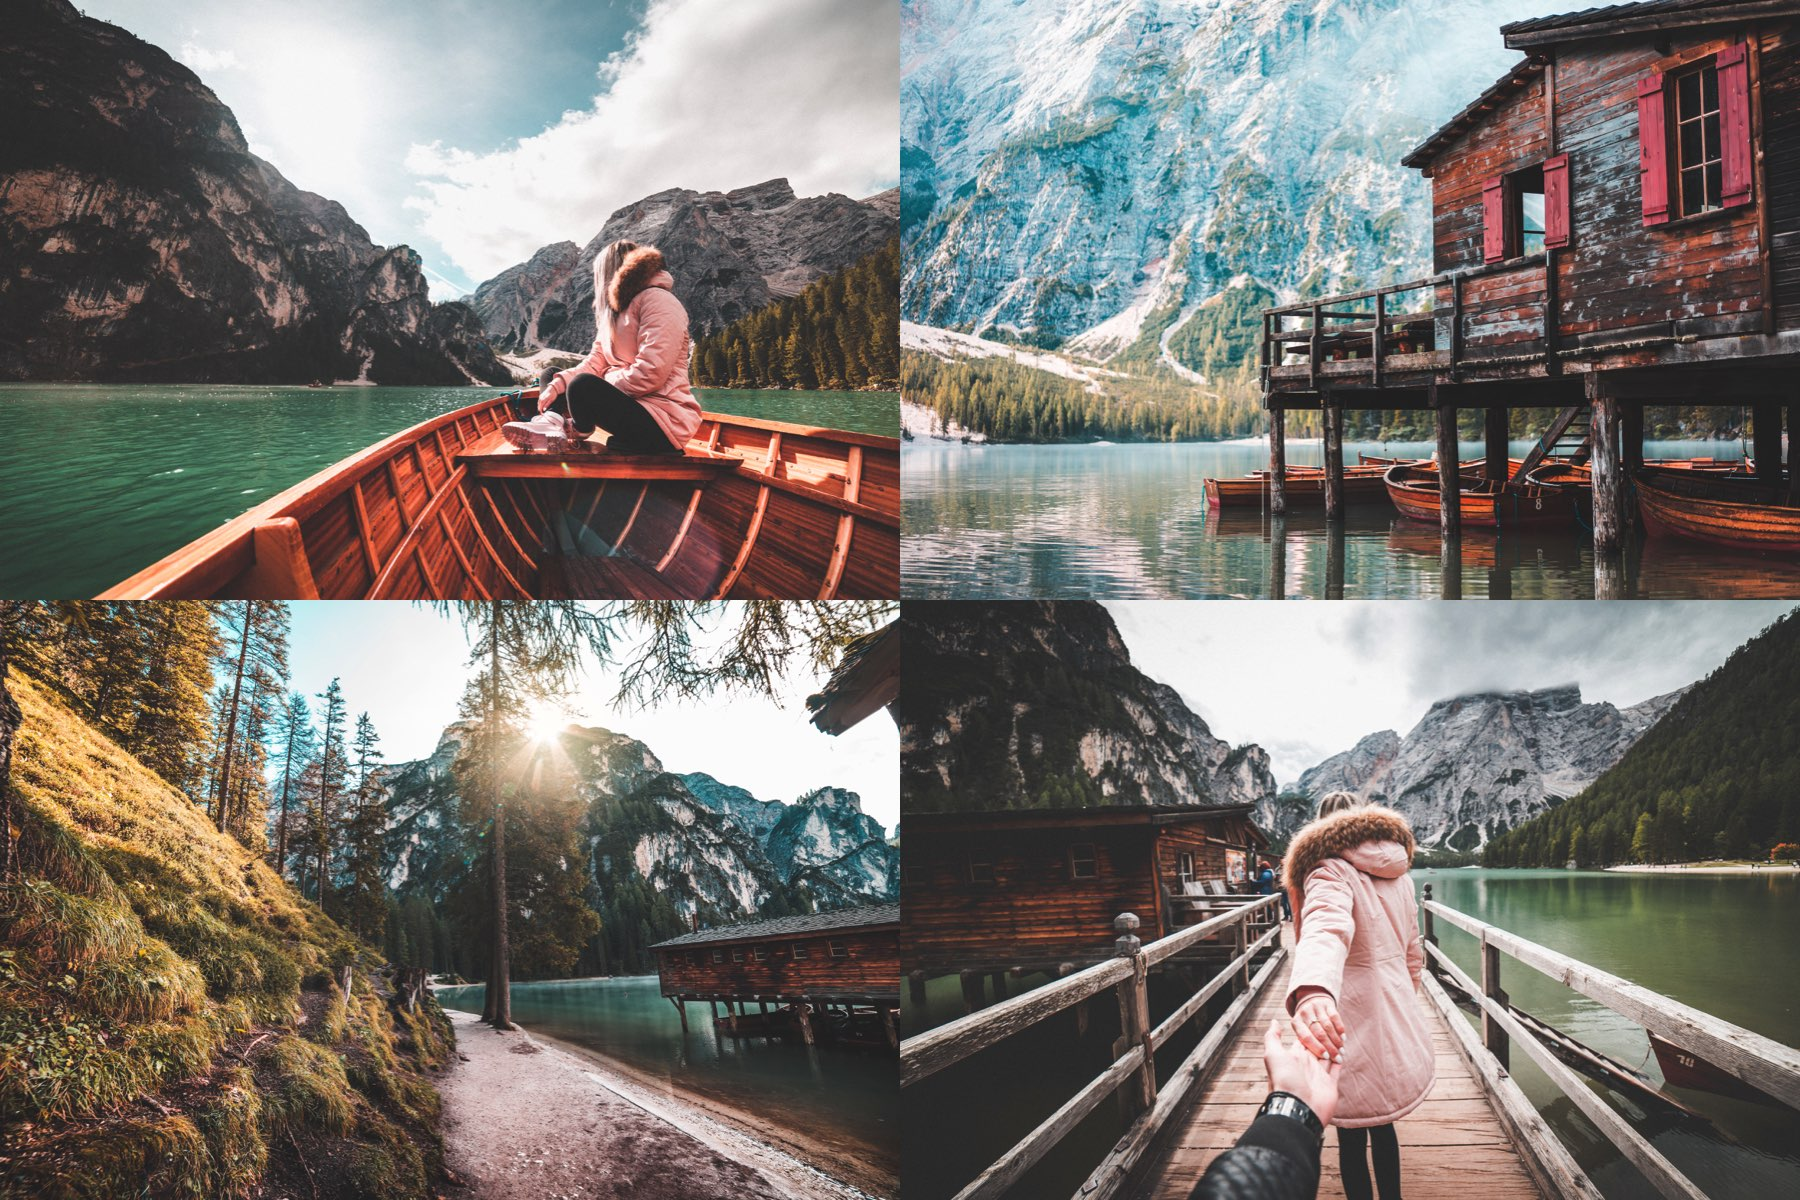 lago di braies preview 5